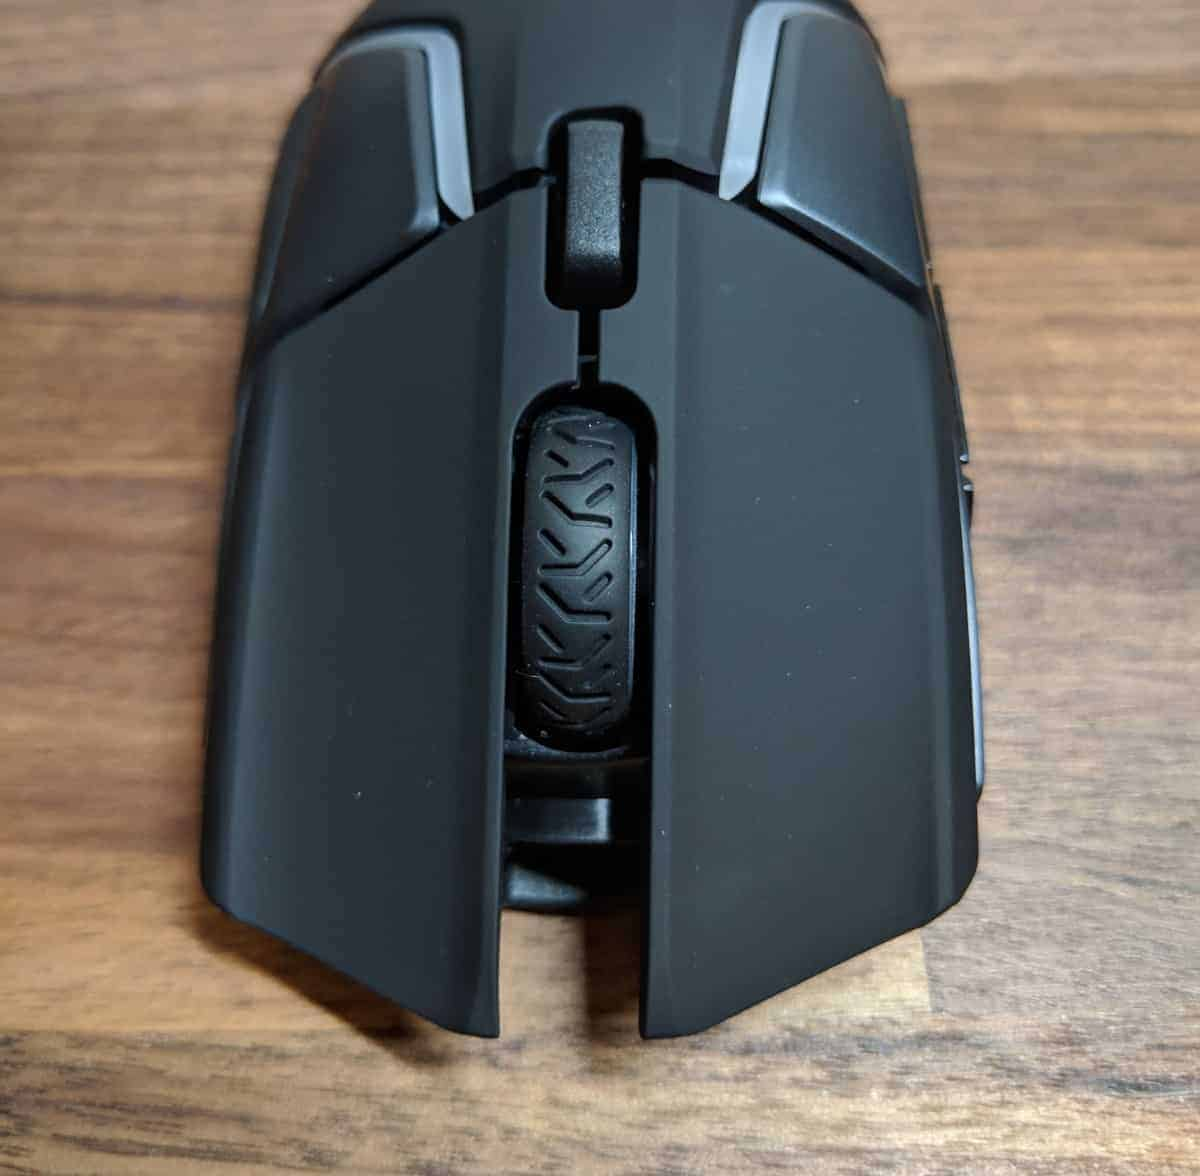 Steelseries-rival-650-Photos-16 SteelSeries Rival 650 Wireless Gaming Mouse Review